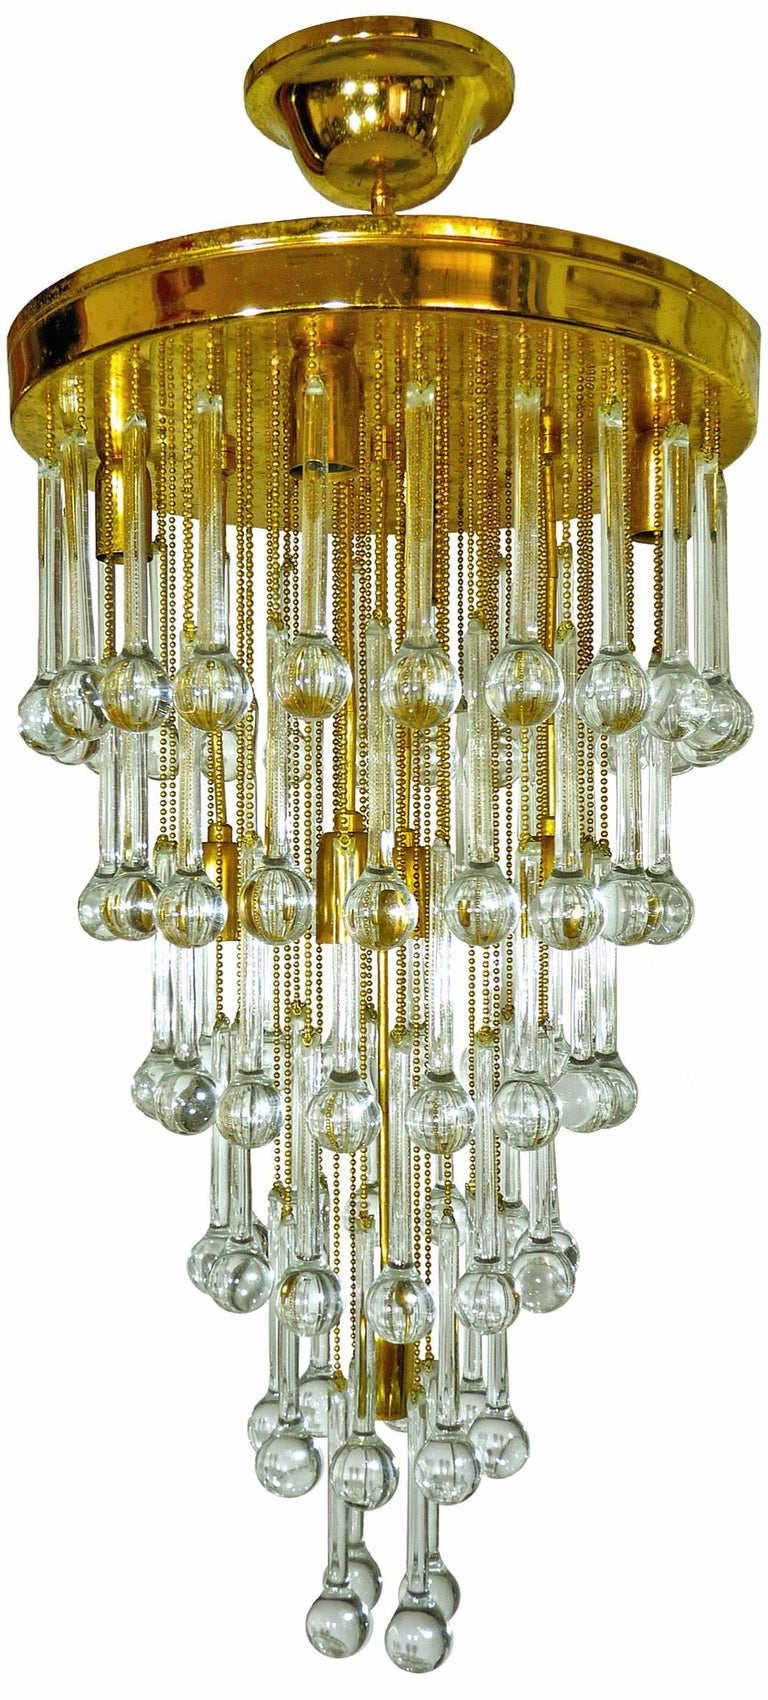 Stunning crystal waterfall wedding cake chandelier with nine-light flush mount chandelier, attributed to Ernst Palme. The piece is gold-plated and detailed with six layers of clear crystal elongated teardrop shaped prisms.